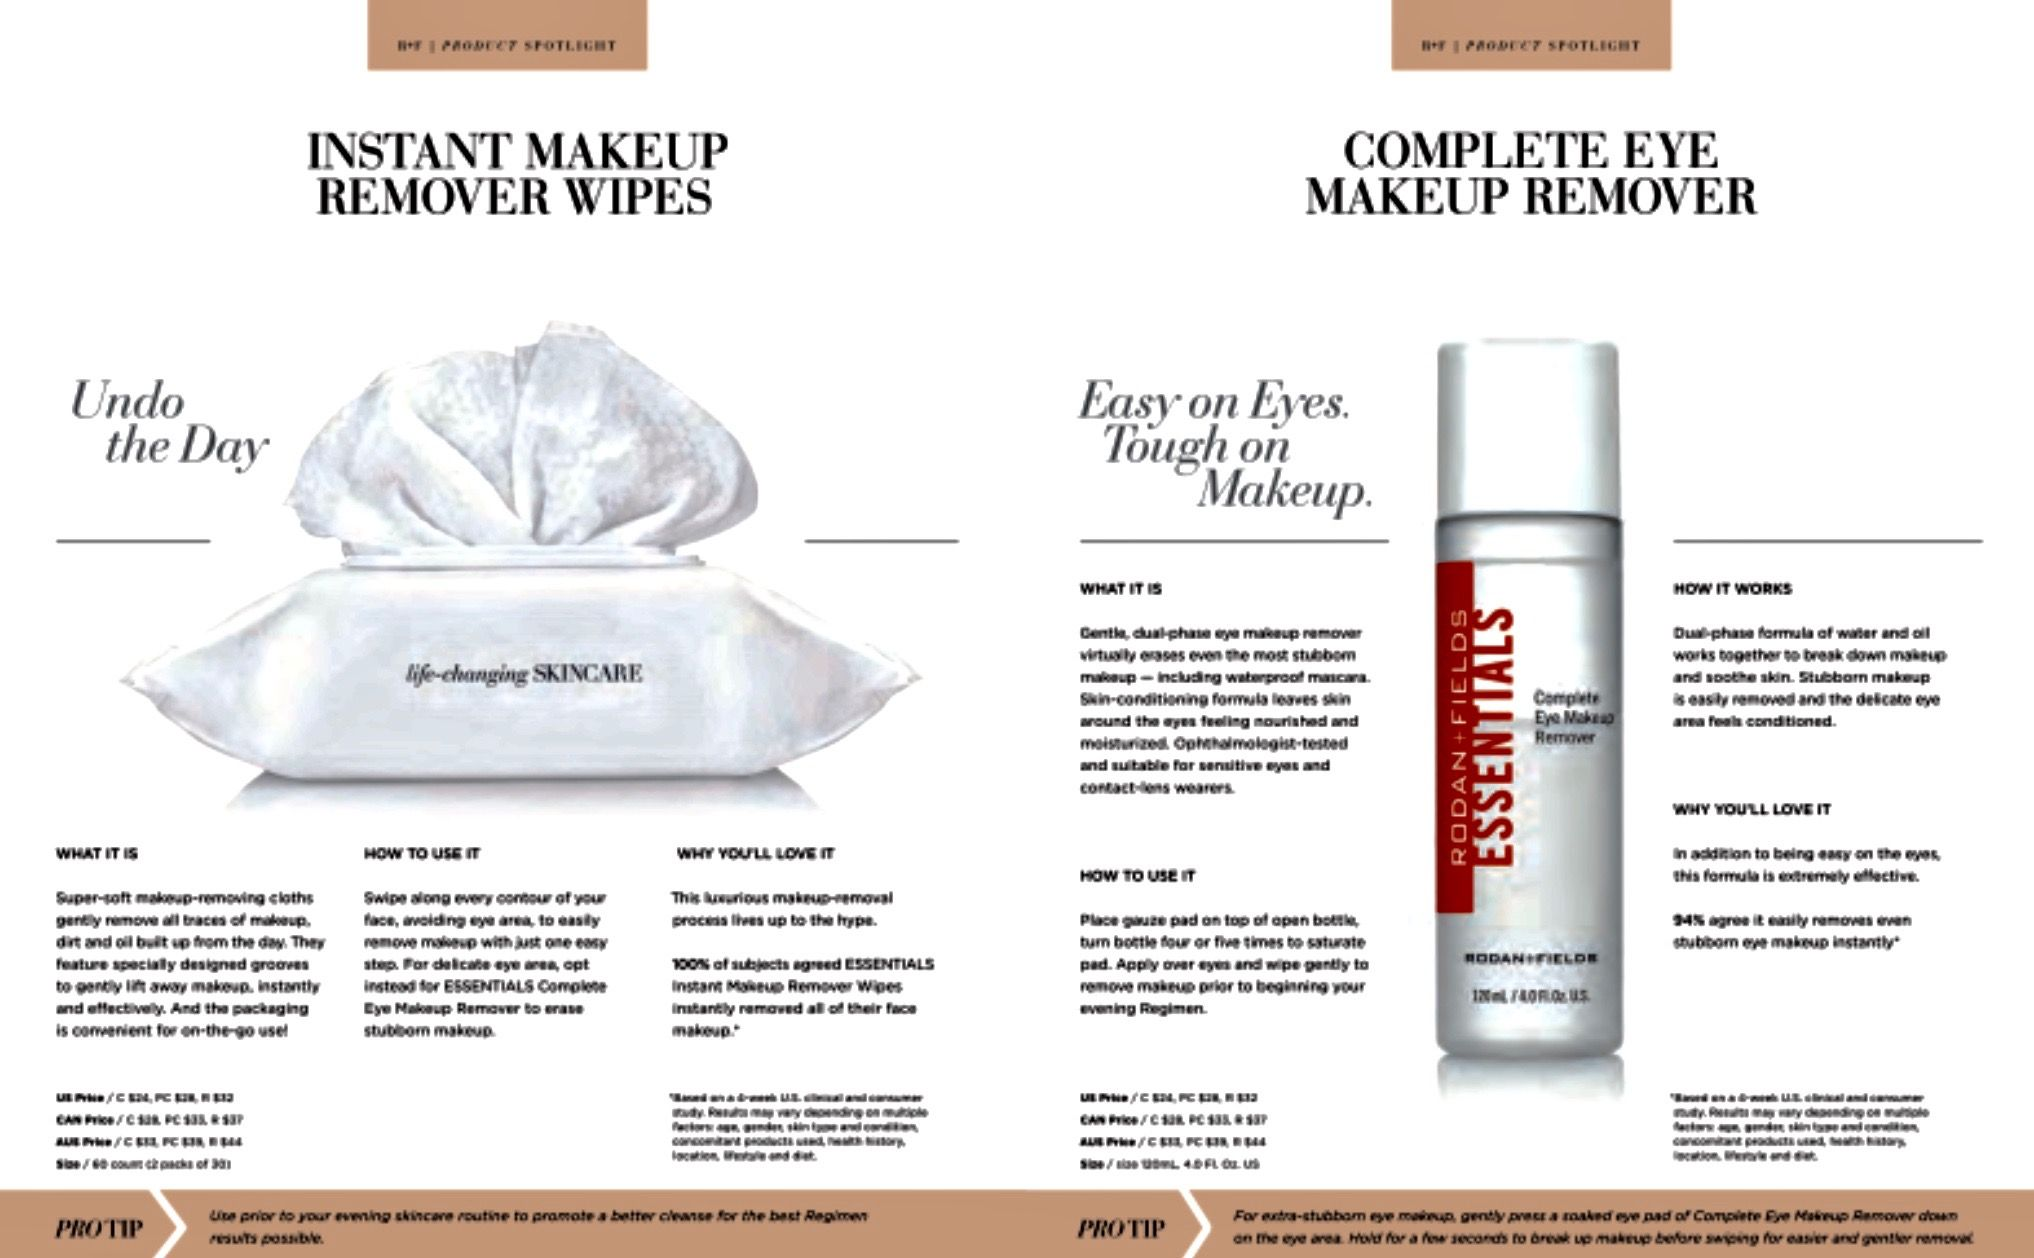 Makeup remover wipes image by Heidi Holtzclaw Rodan